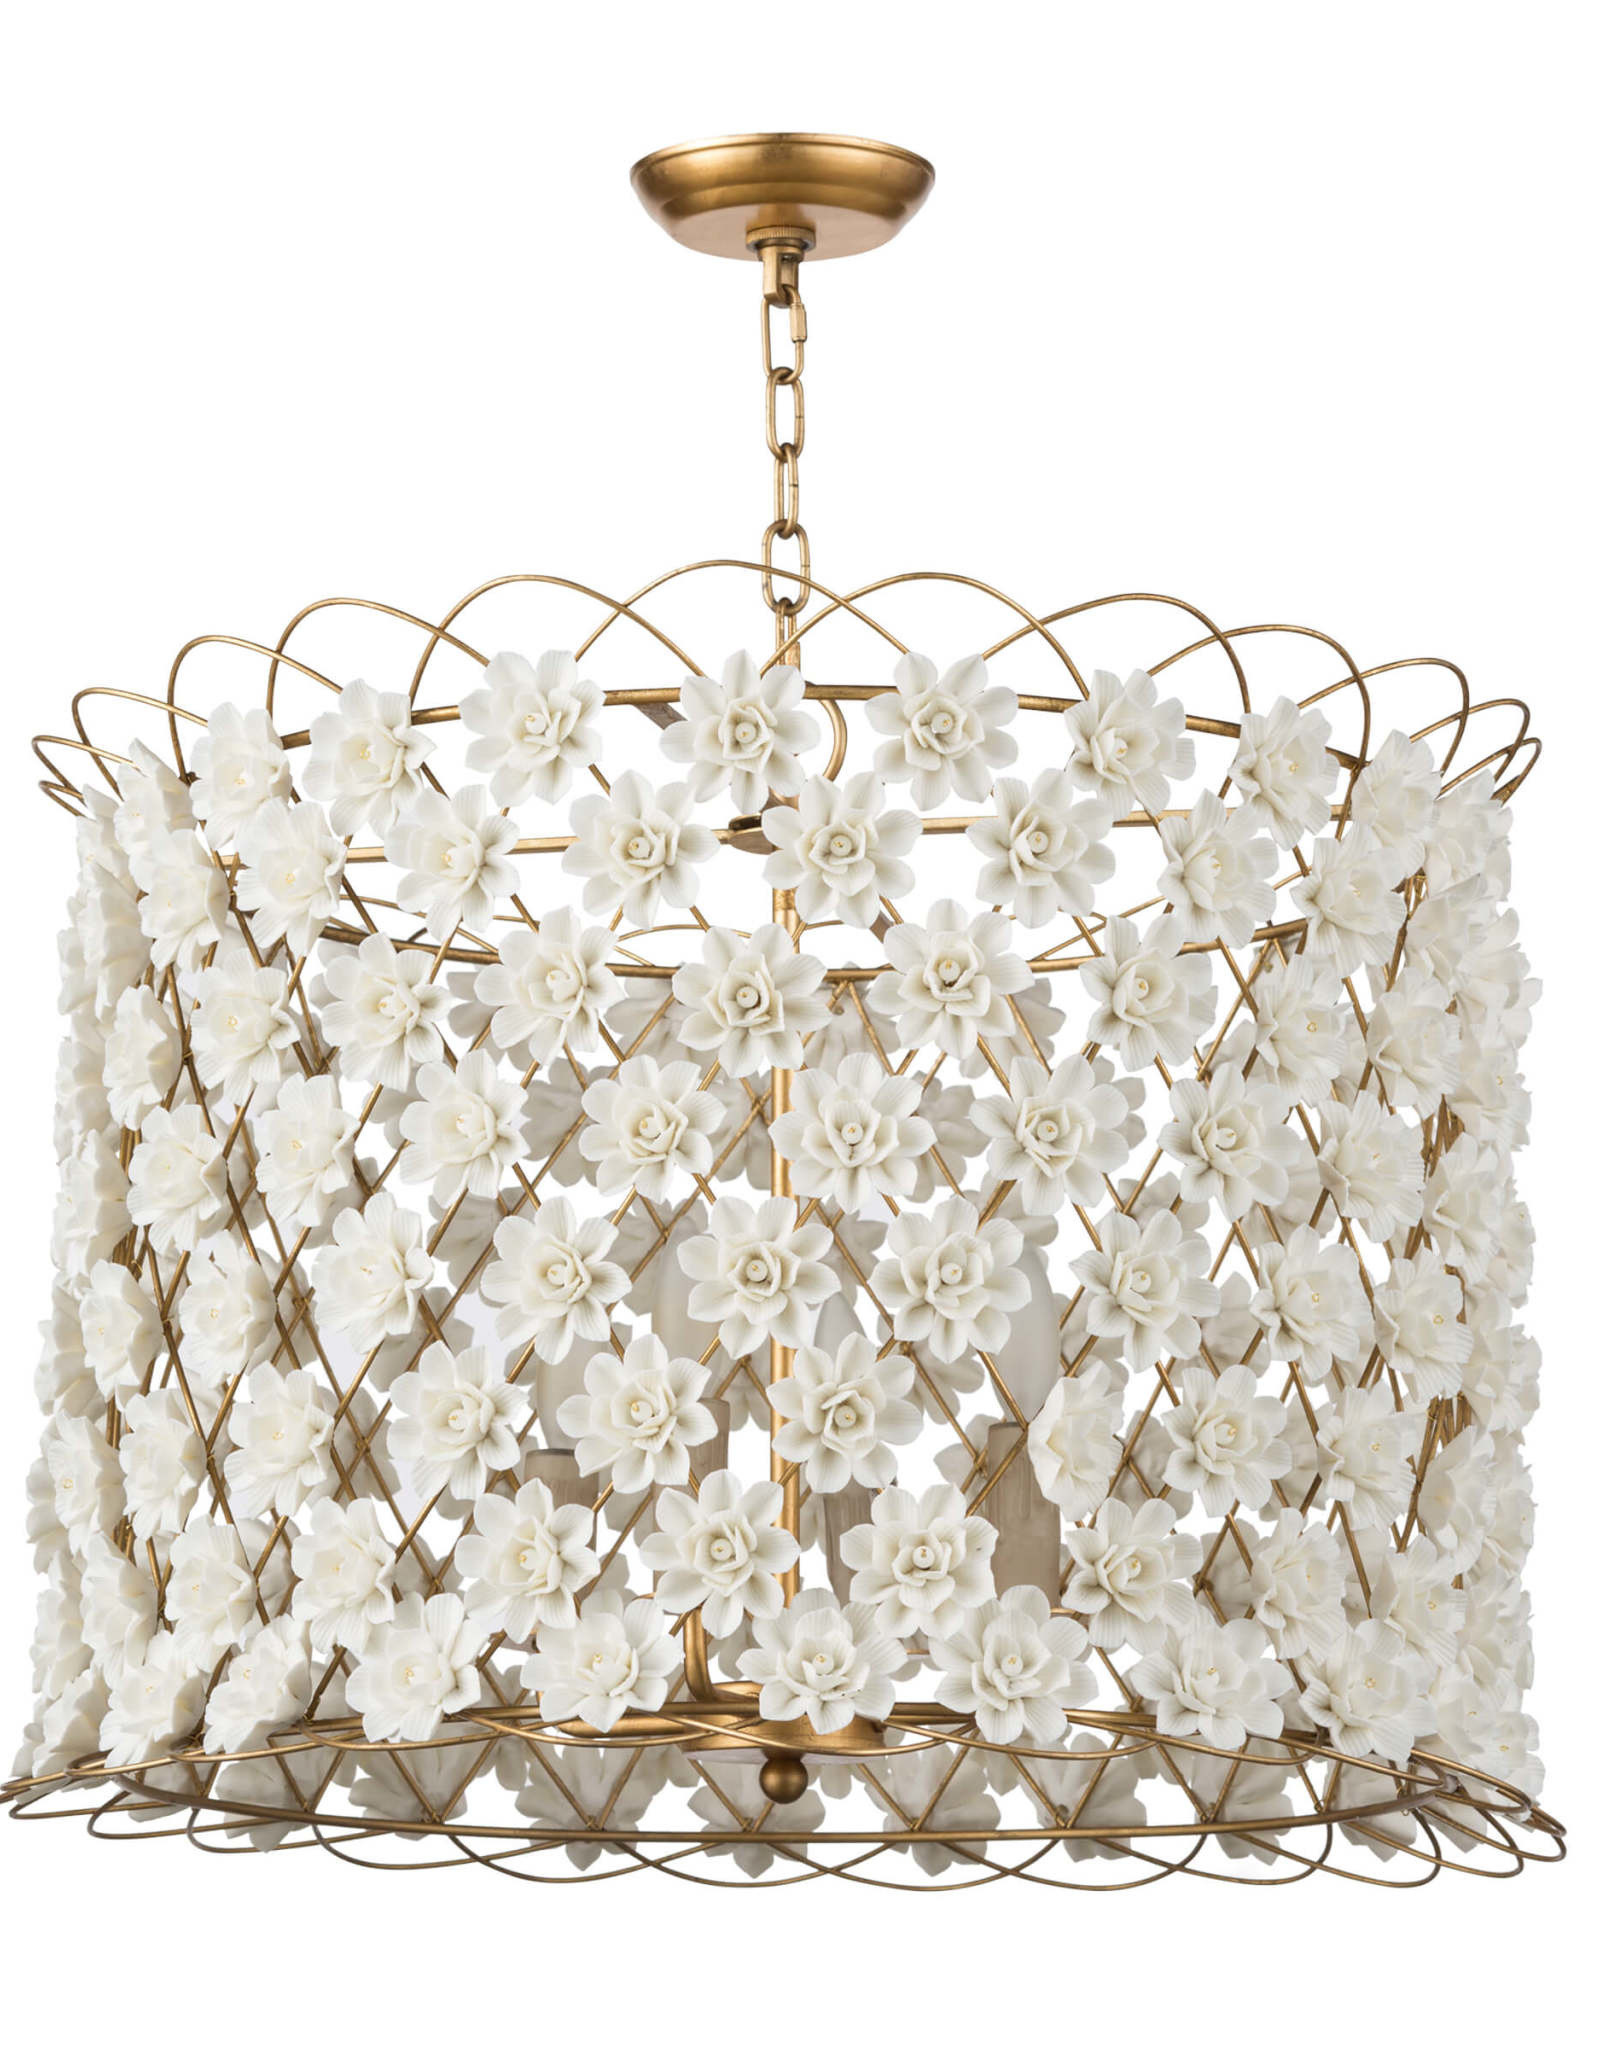 Regina Andrew Design Alice Porcelain Flower Chandelier